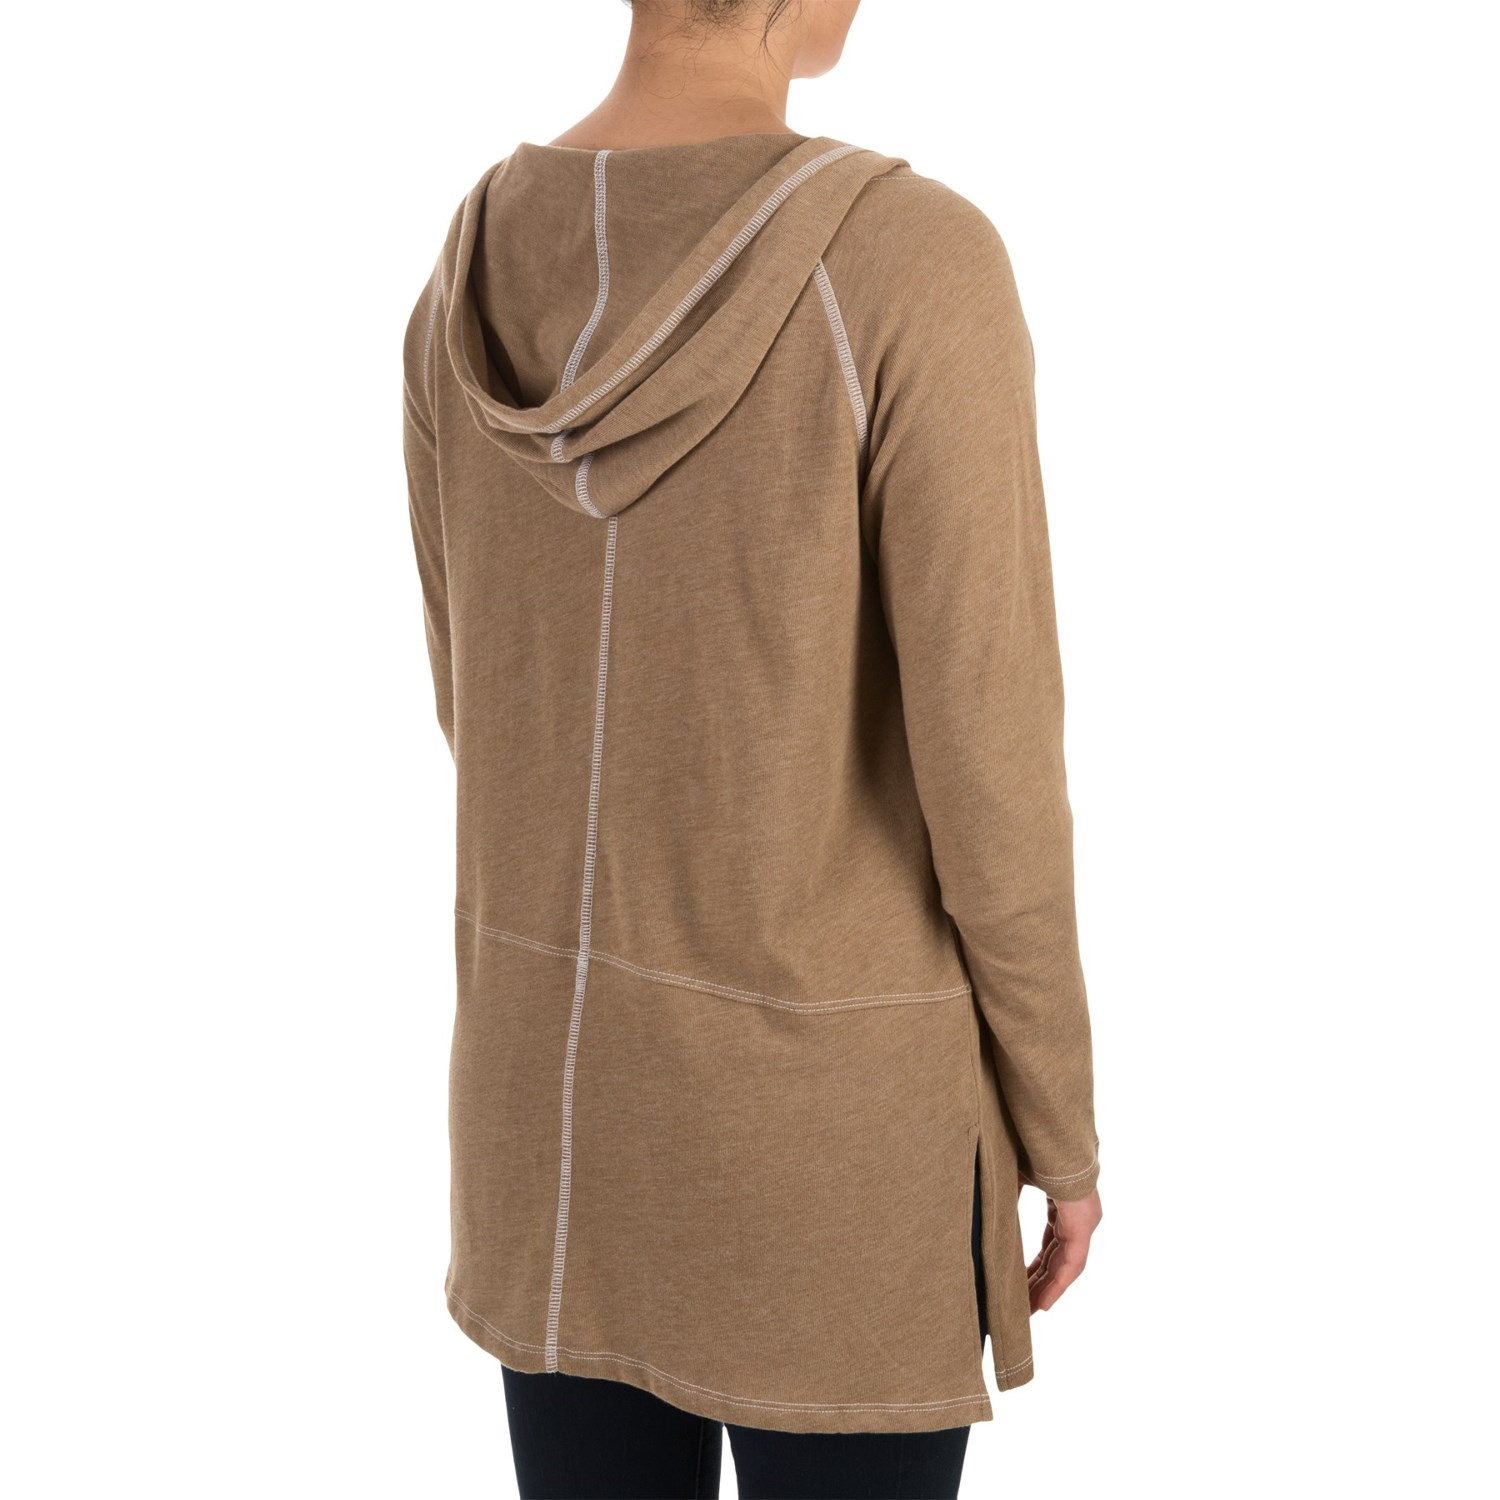 Womans Hooded Cardigan Sweater 76